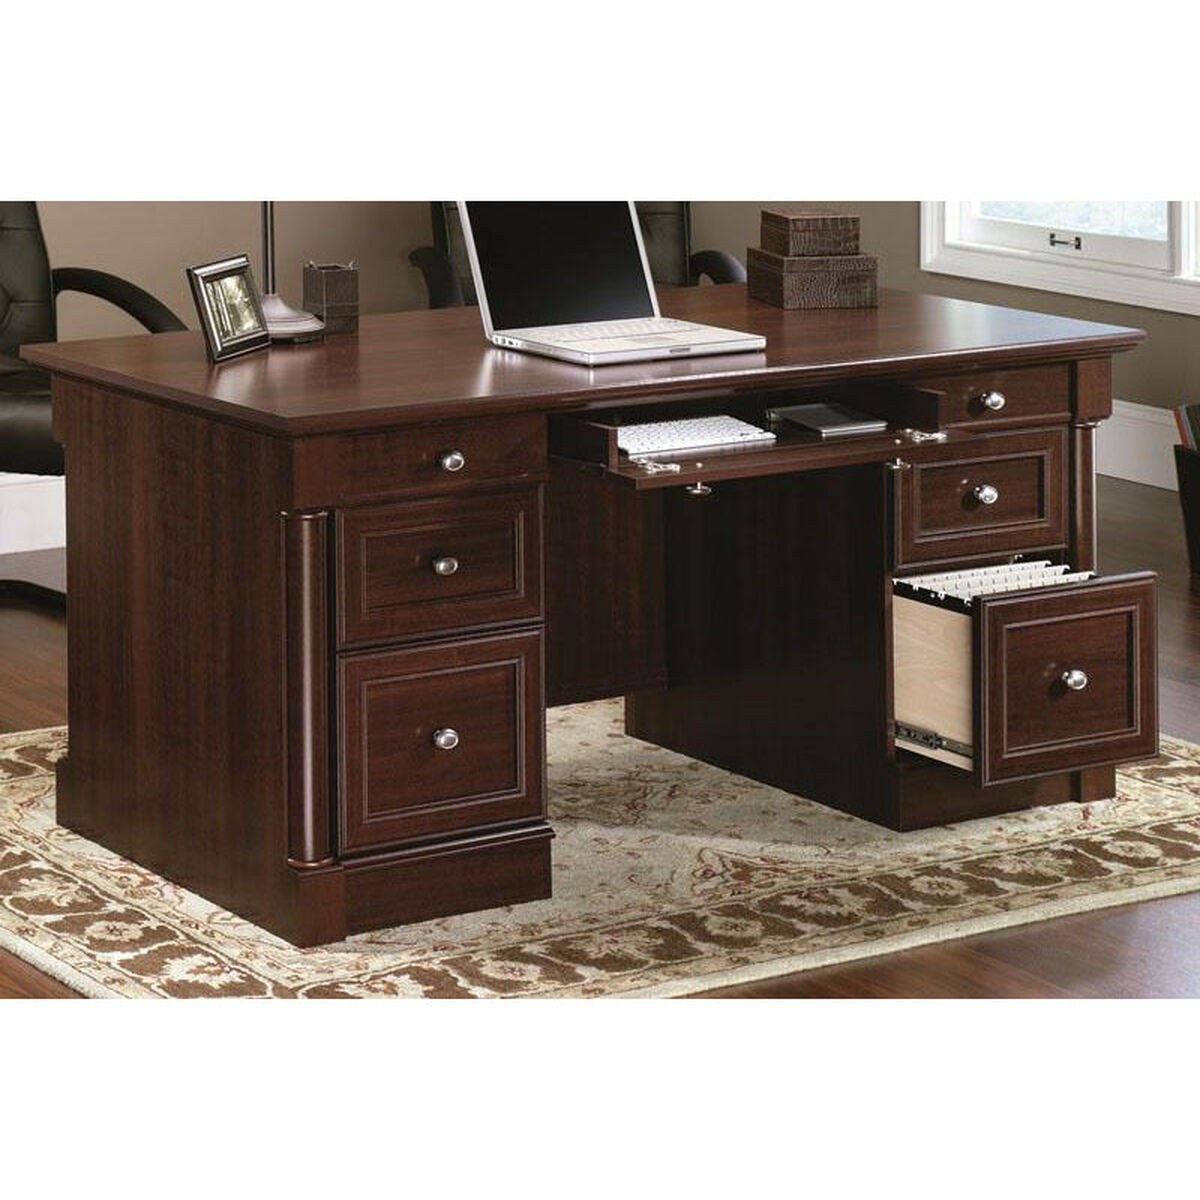 Our Palladia 65 125 W Executive Desk Select Cherry Is On Now